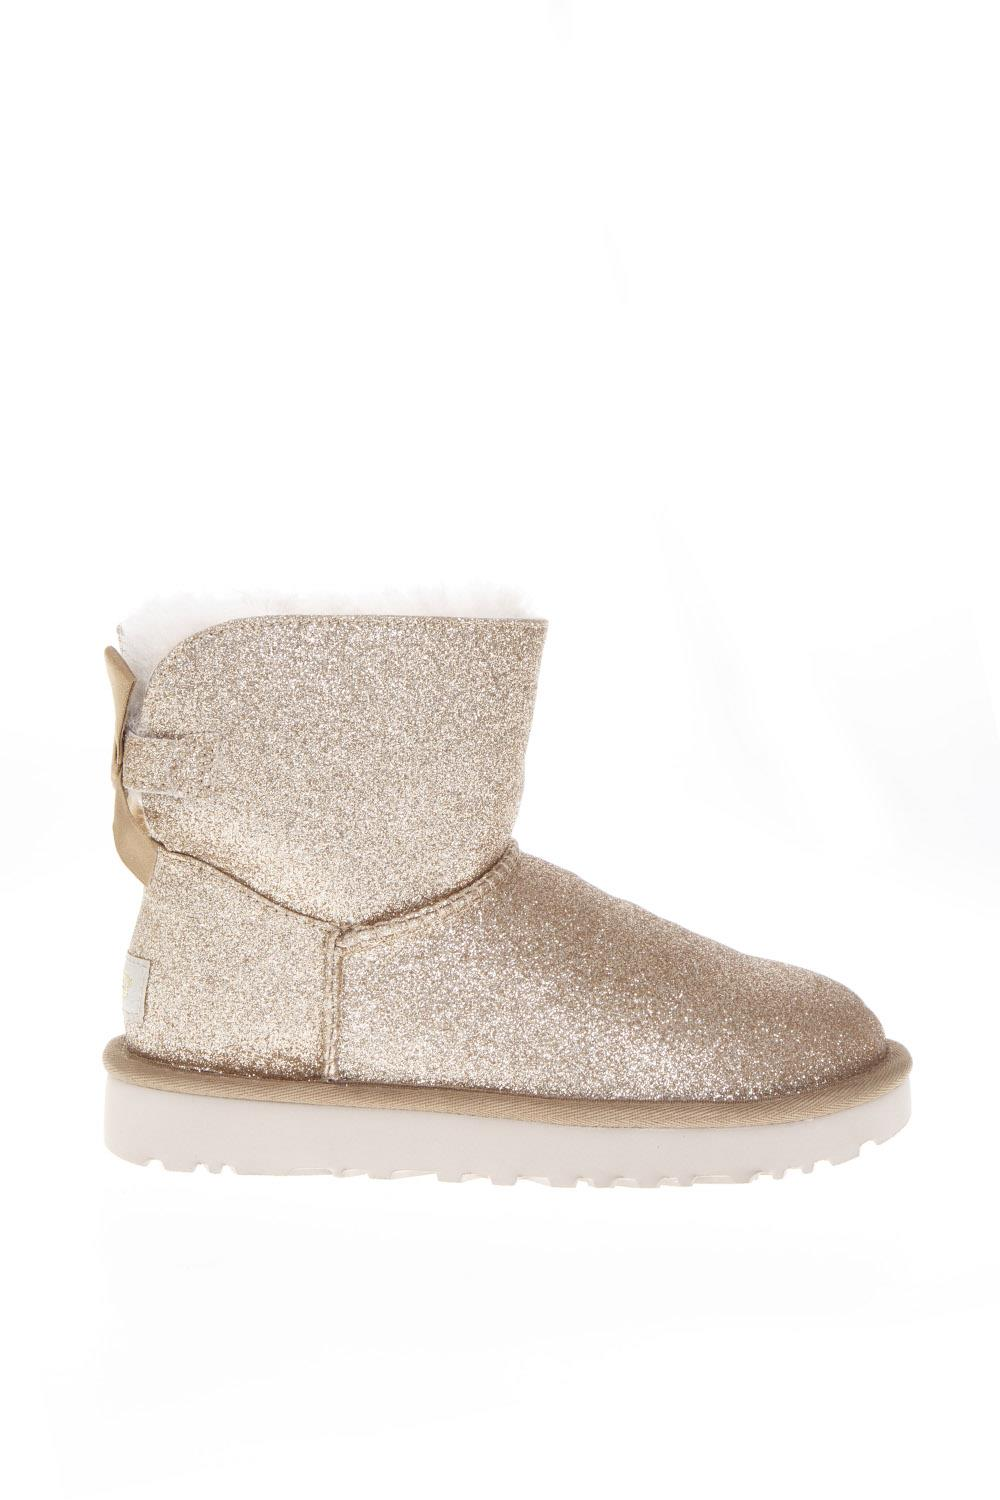 enorme sconto 589bf d9724 GOLD SHEEP LEATHER MINI BAILEY SPARKLE BOOTS FW 2018